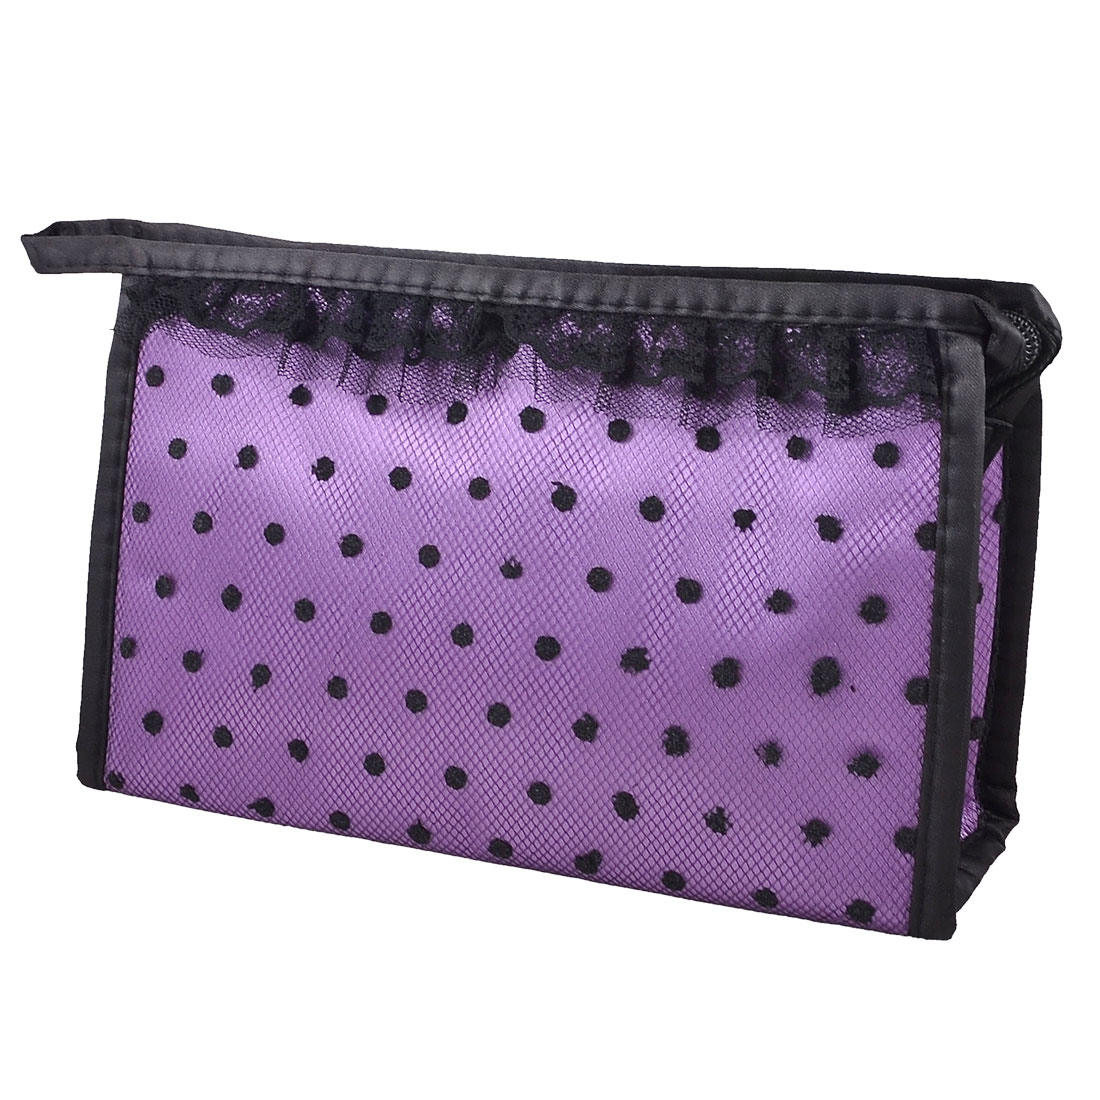 Zip up Purple Black Dots Lace Meshy Cosmetic Bag Organizer Lipstick Perfume Holder